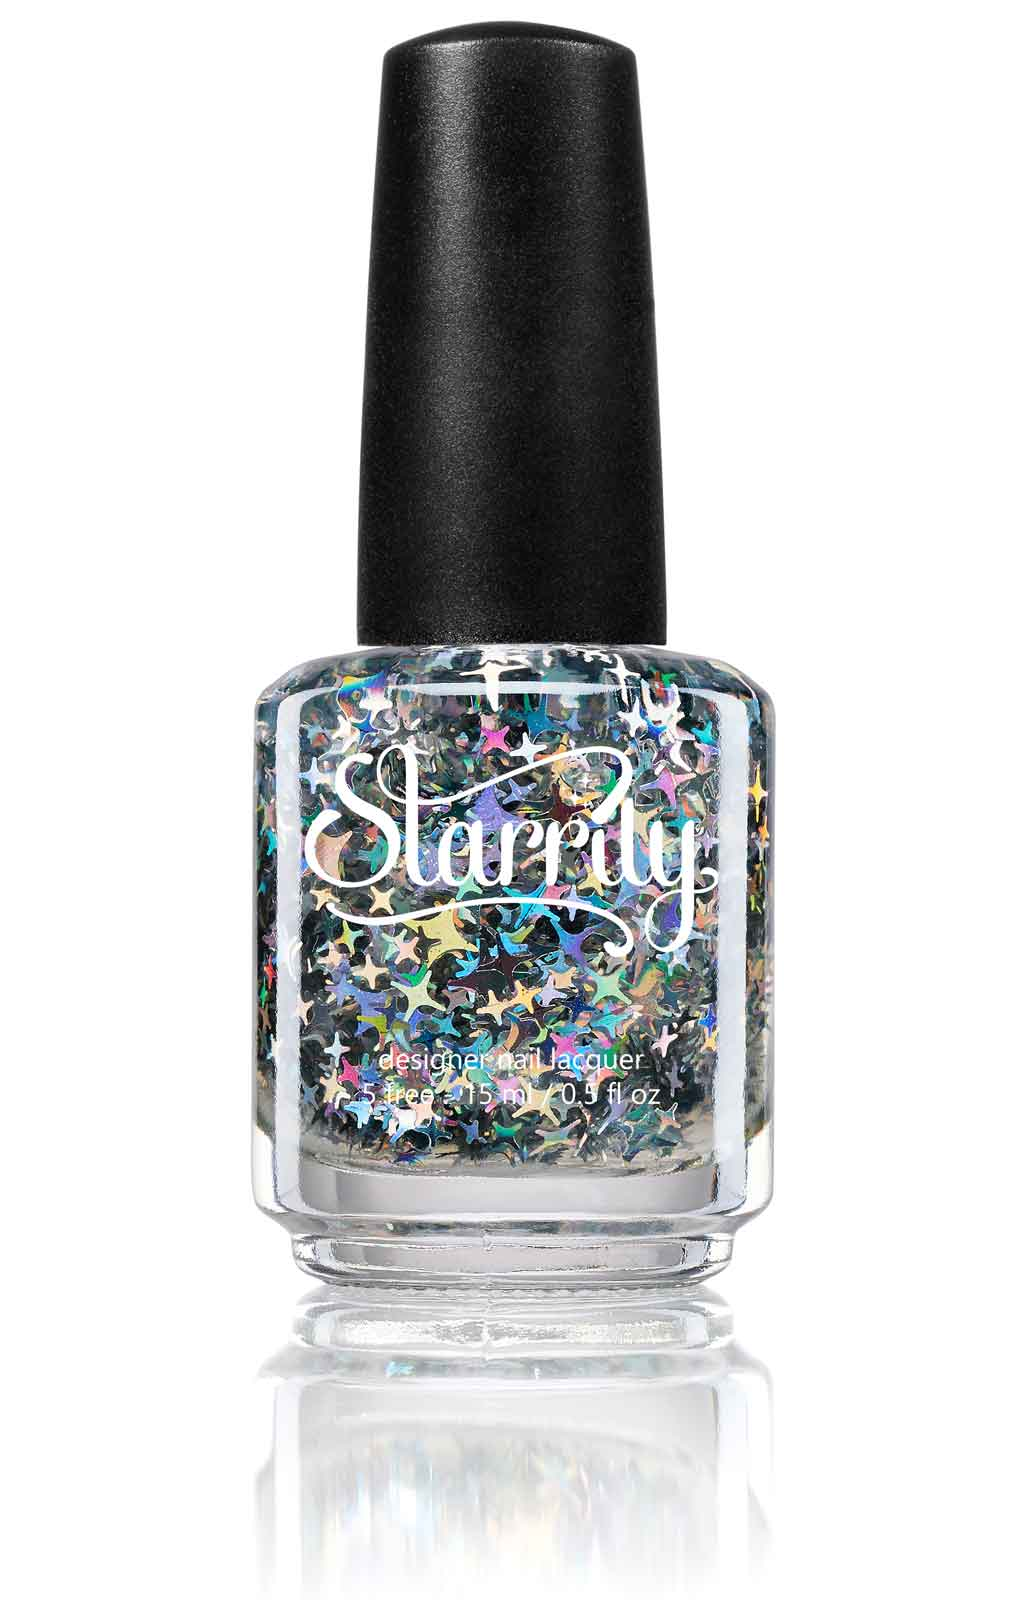 Starrily City of Stars - Big Glitter Top Coat Nail Polish - 15 ml